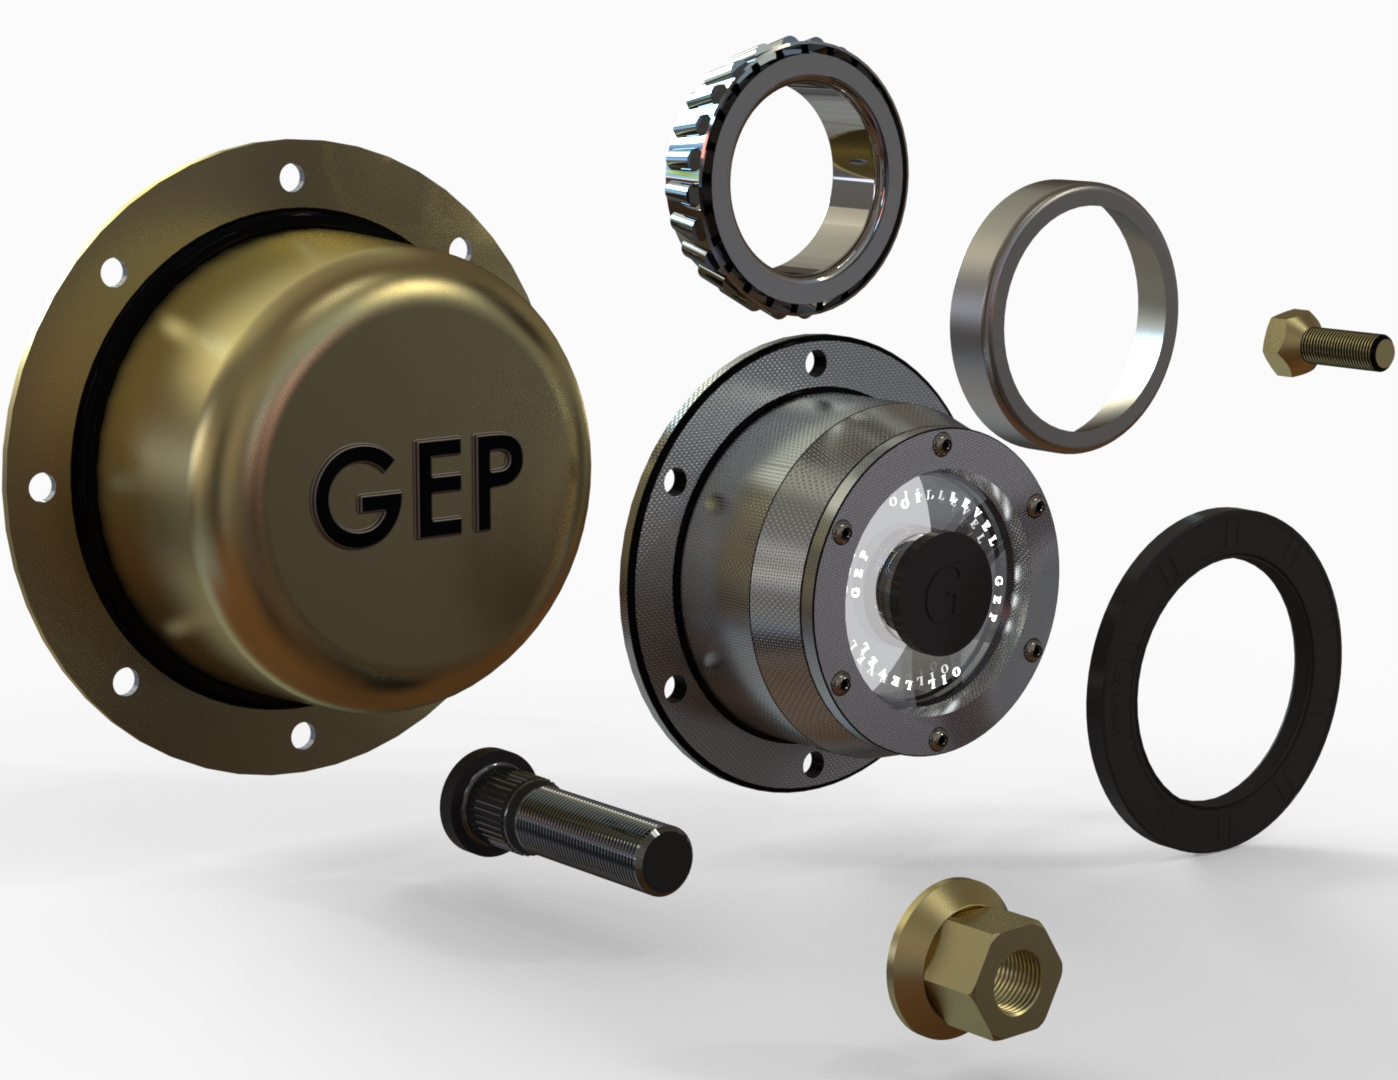 COMPONENTS - HERE YOU WILL FIND EVERYTHING FROM DUST CAPS, SPINDLE NUTS, BEARINGS AND CUPS, GREASE SEALS, LUG BOLTS, STUDS, LUG NUTS, COTTER PINS AND SO ON....ITS ALL HERE!